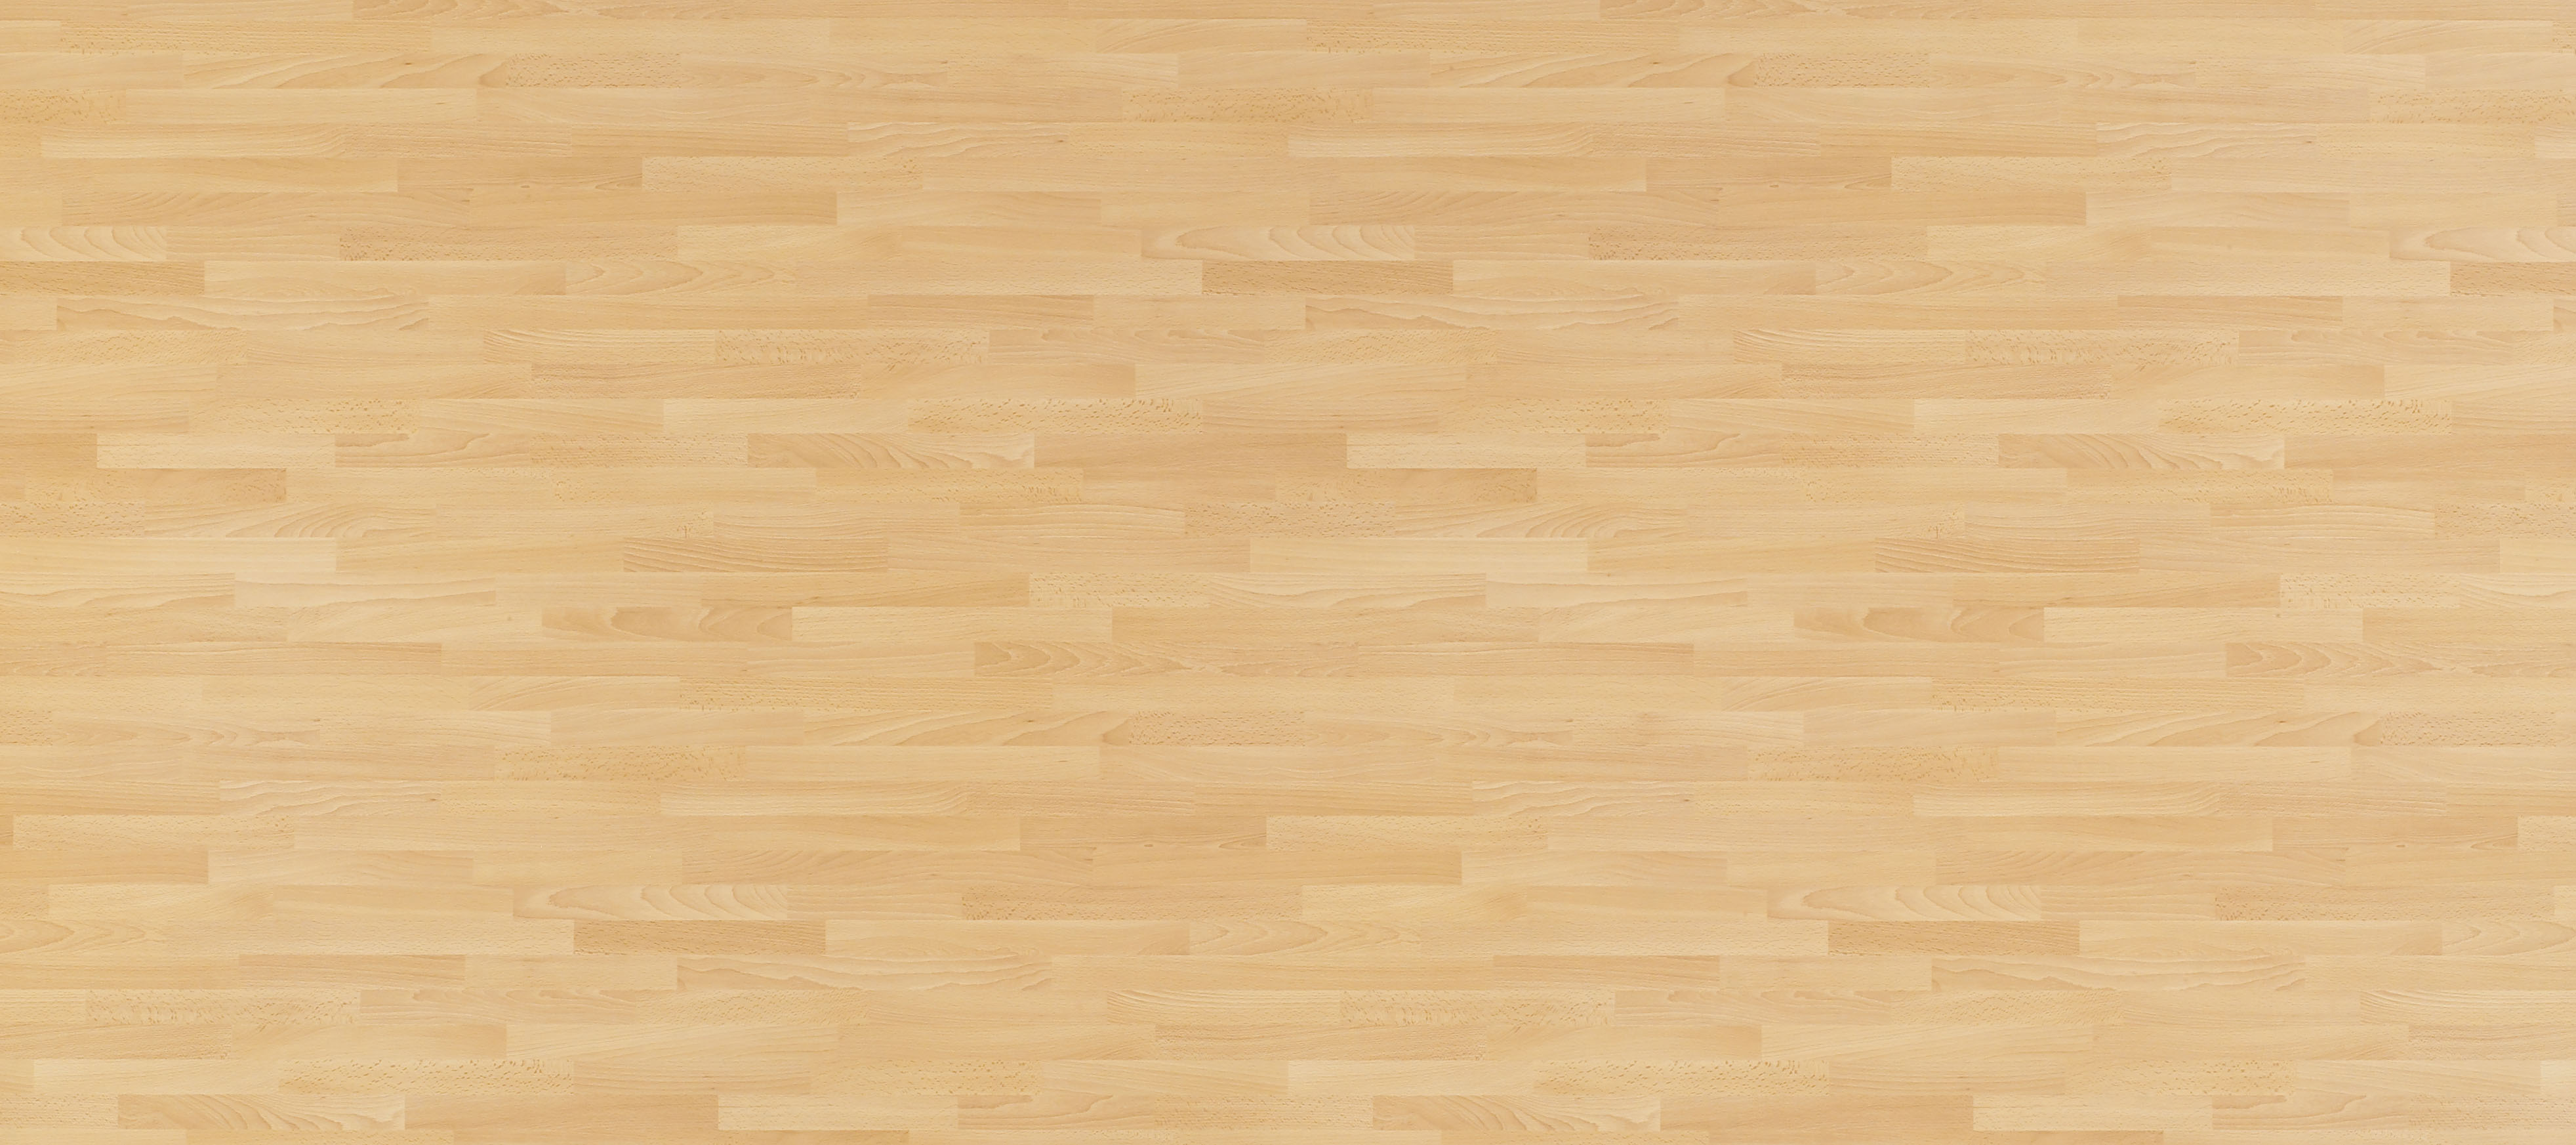 light wood grain texture